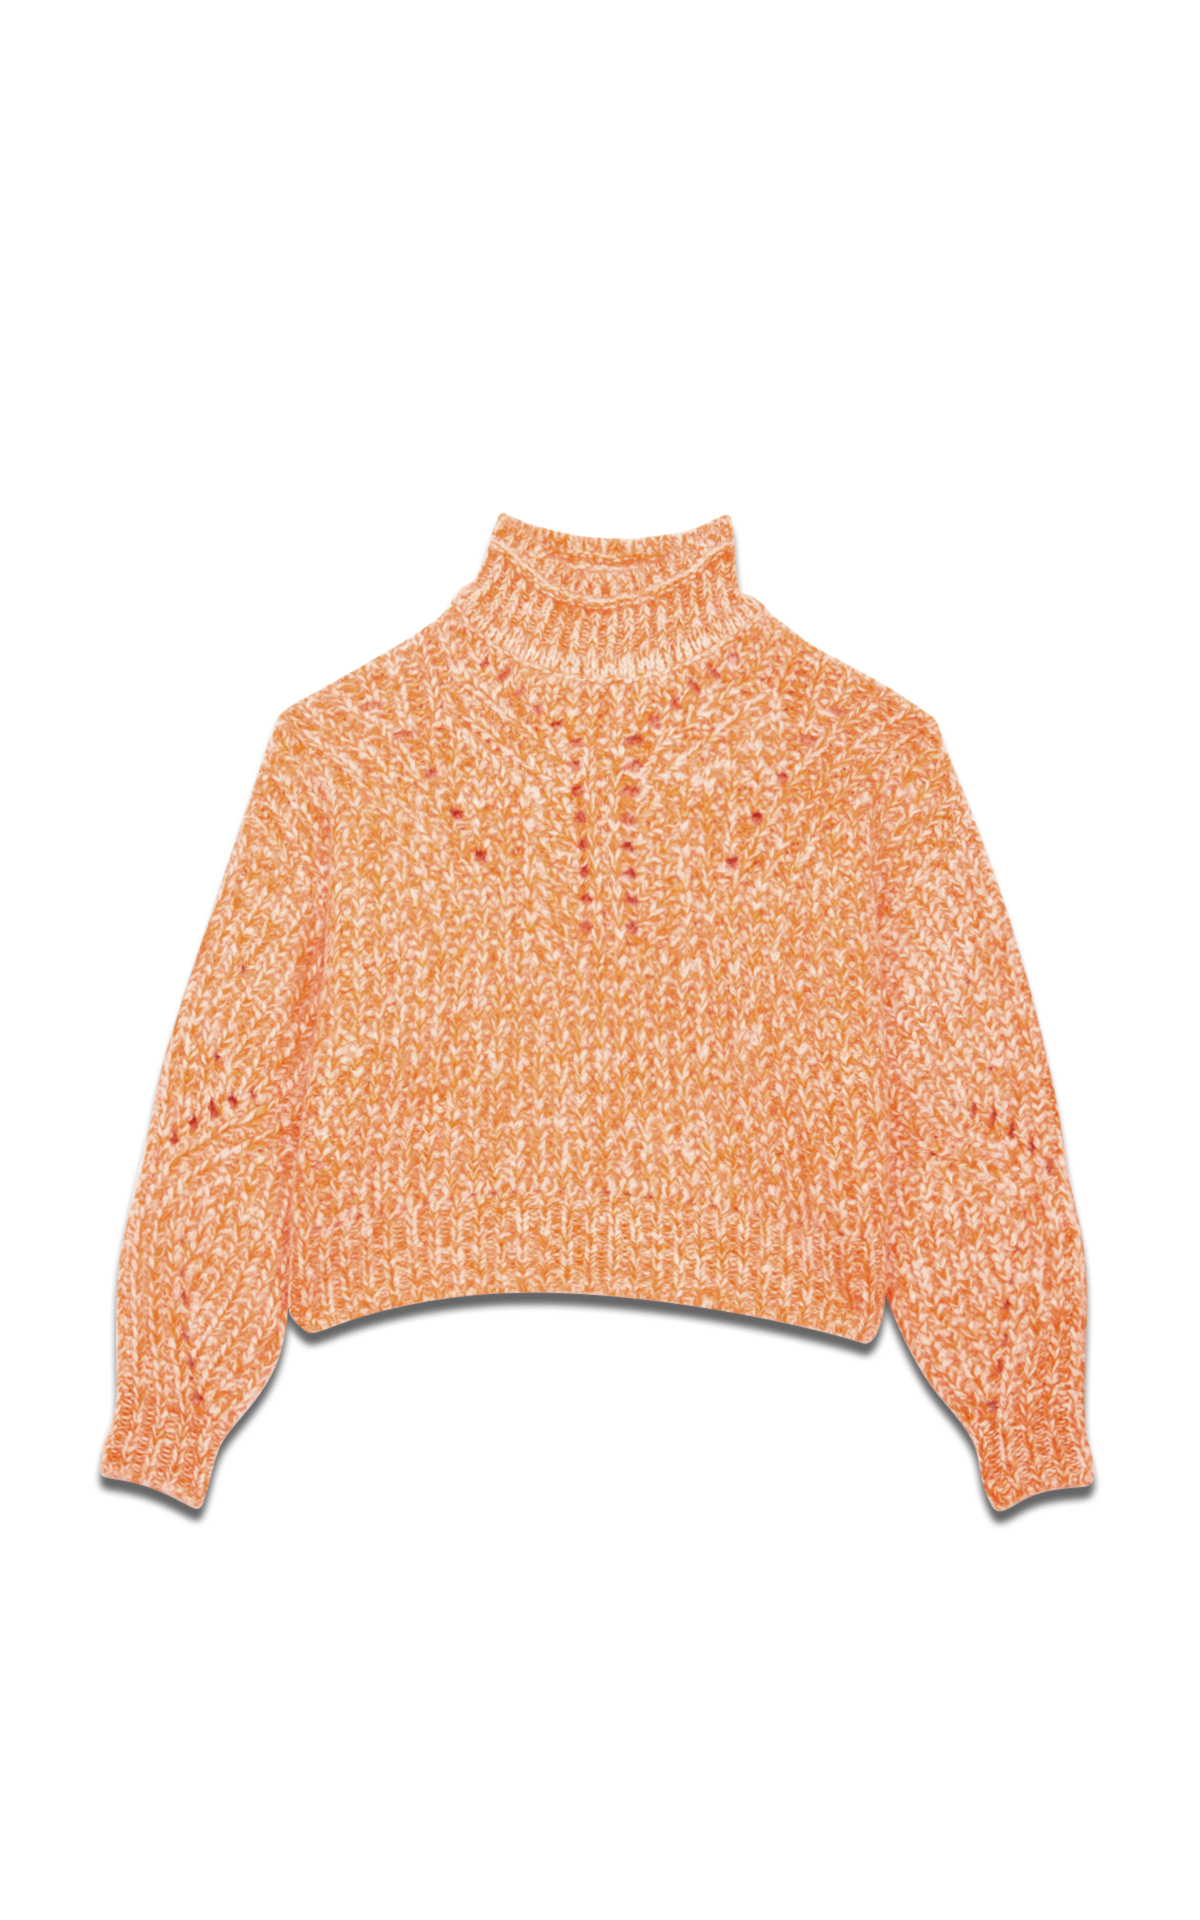 Isabel Marant Orange Jarren jumper*